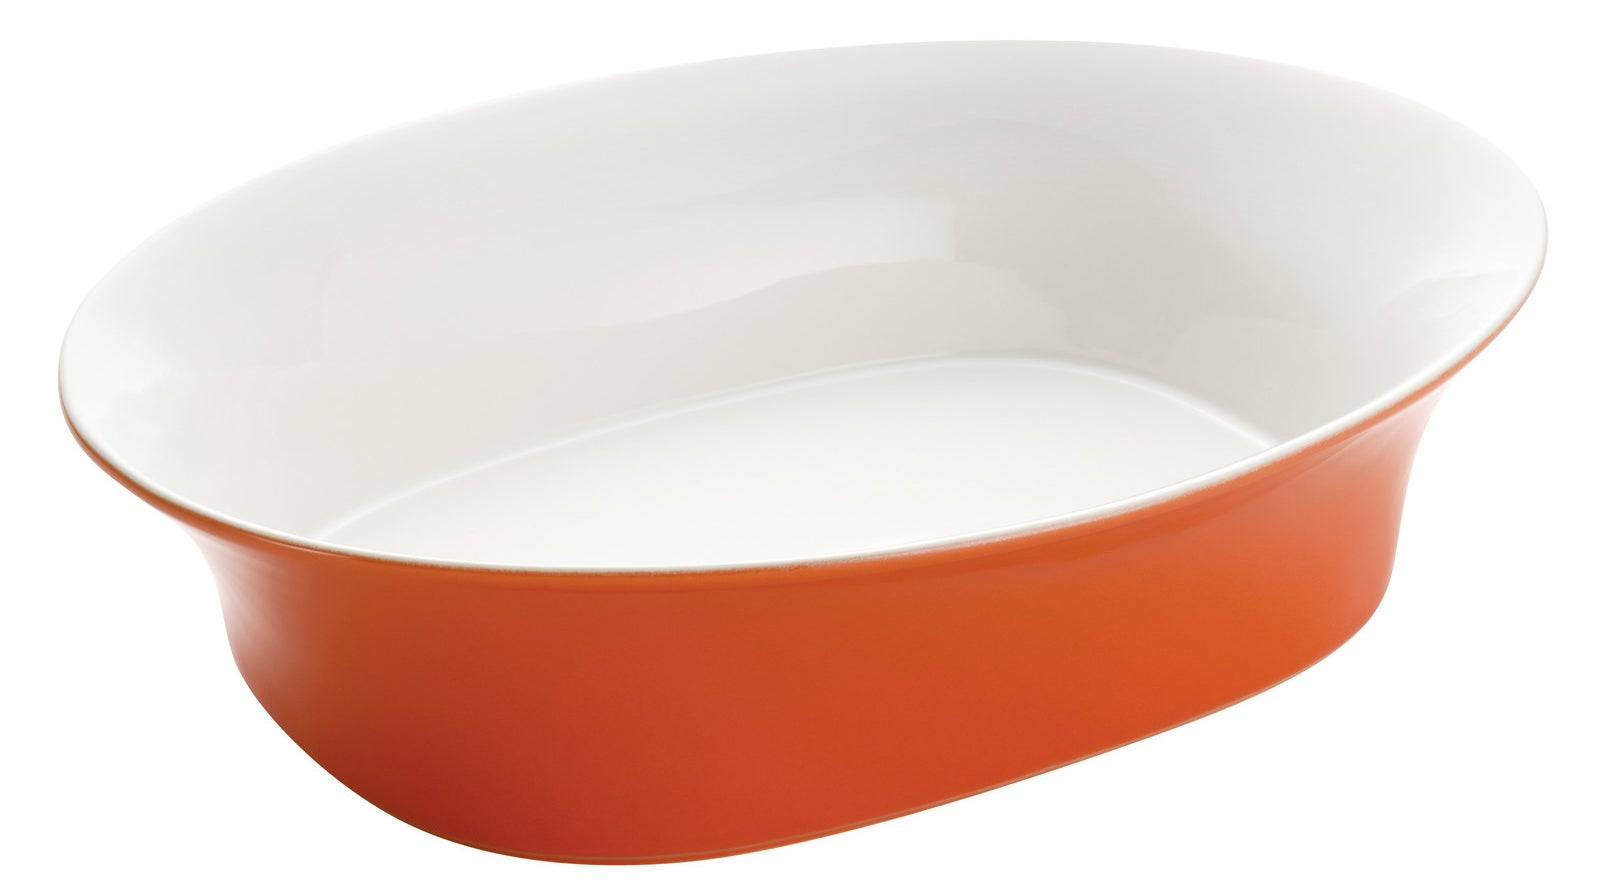 A 14-inch serving bowl safe to use in the dishwasher, freezer, or microwave.